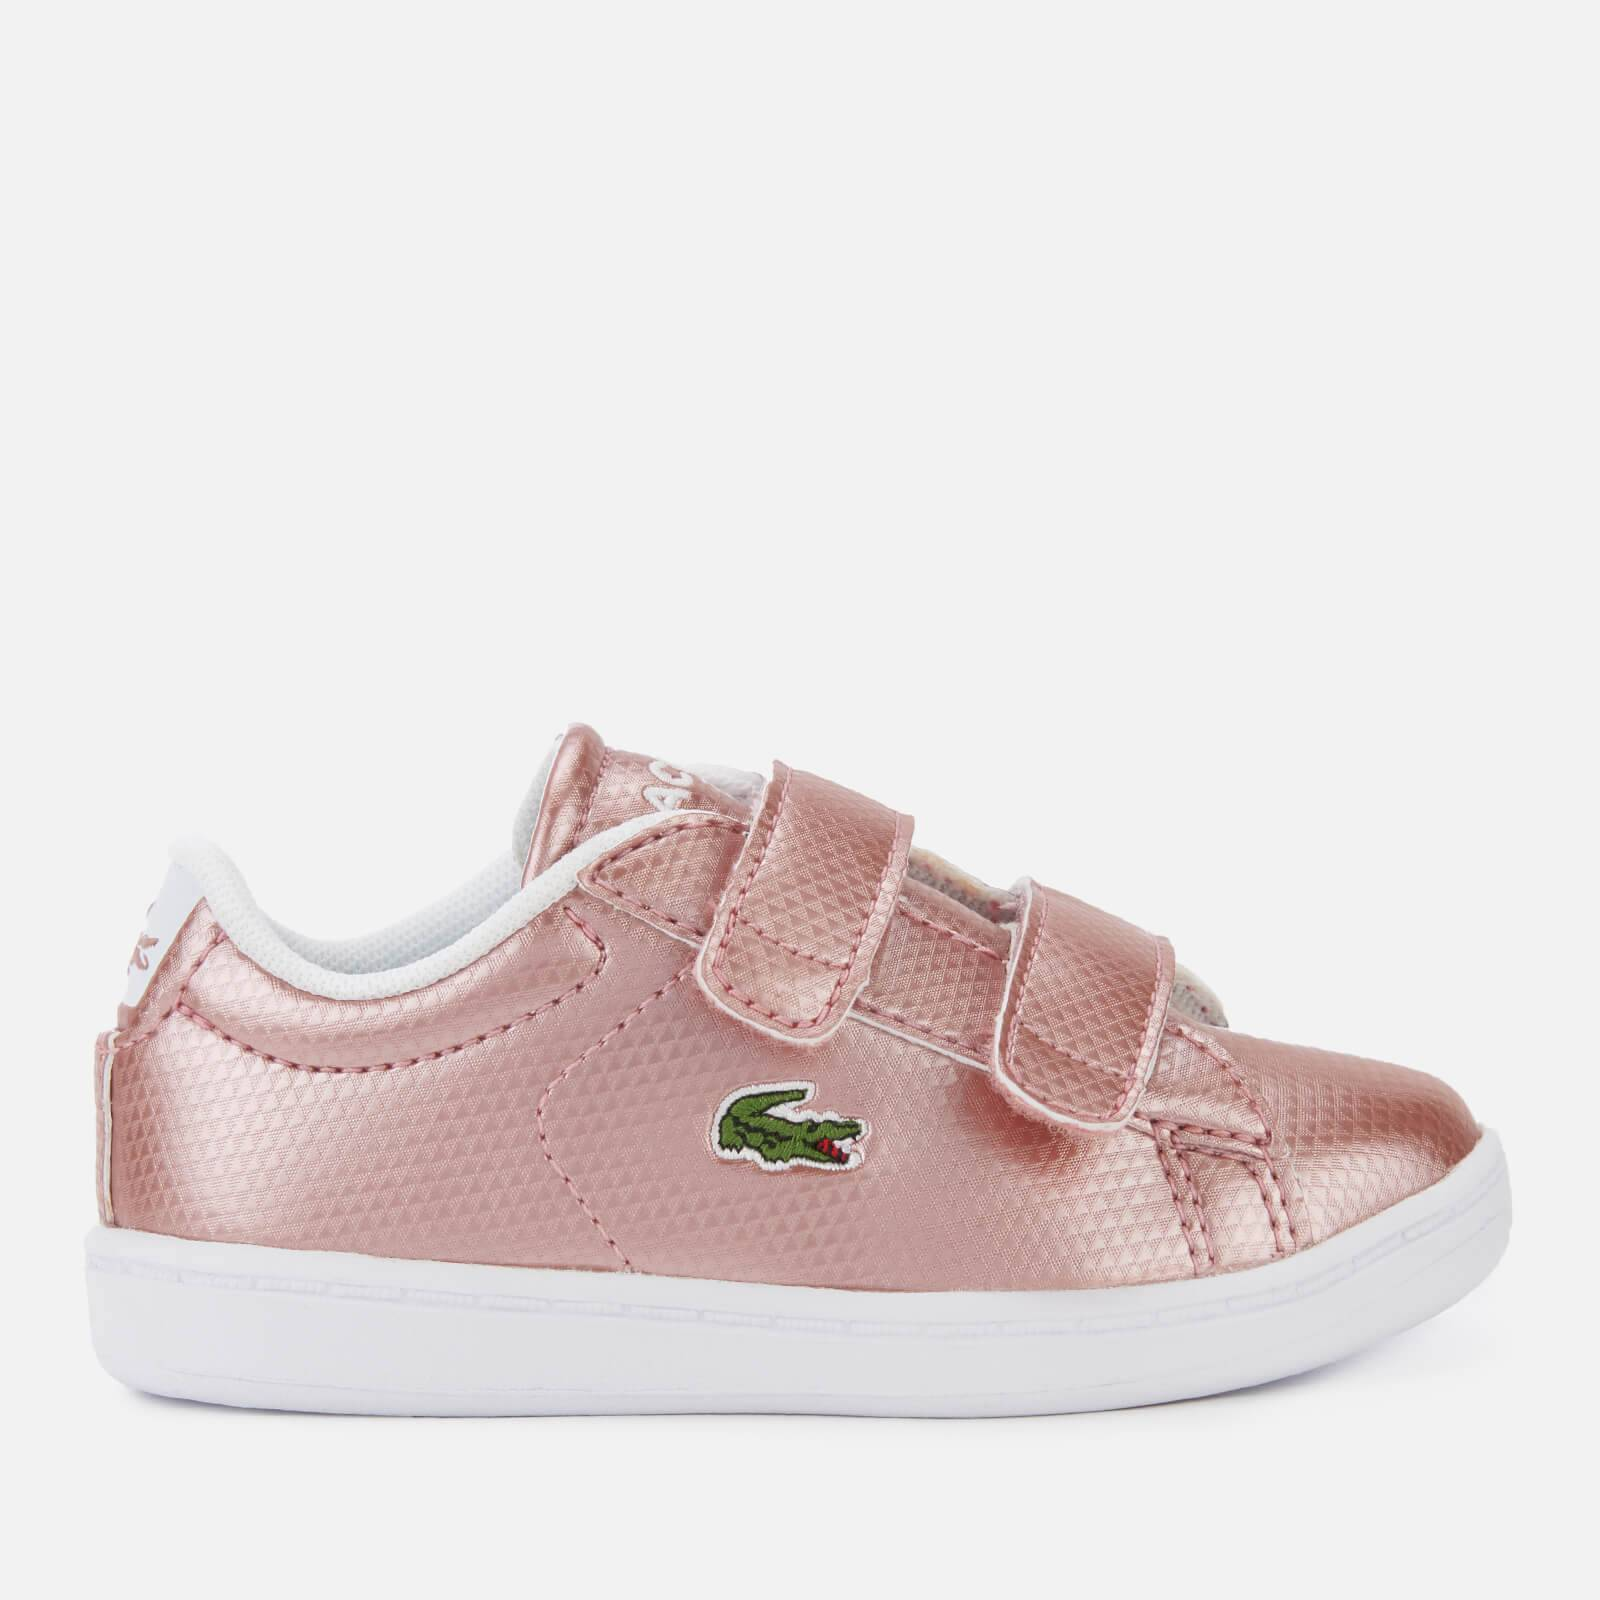 Lacoste Toddler's Carnaby Evo 119 6 Velcro Low Top Trainers - Pink/White - UK 3 Toddler - Pink/White